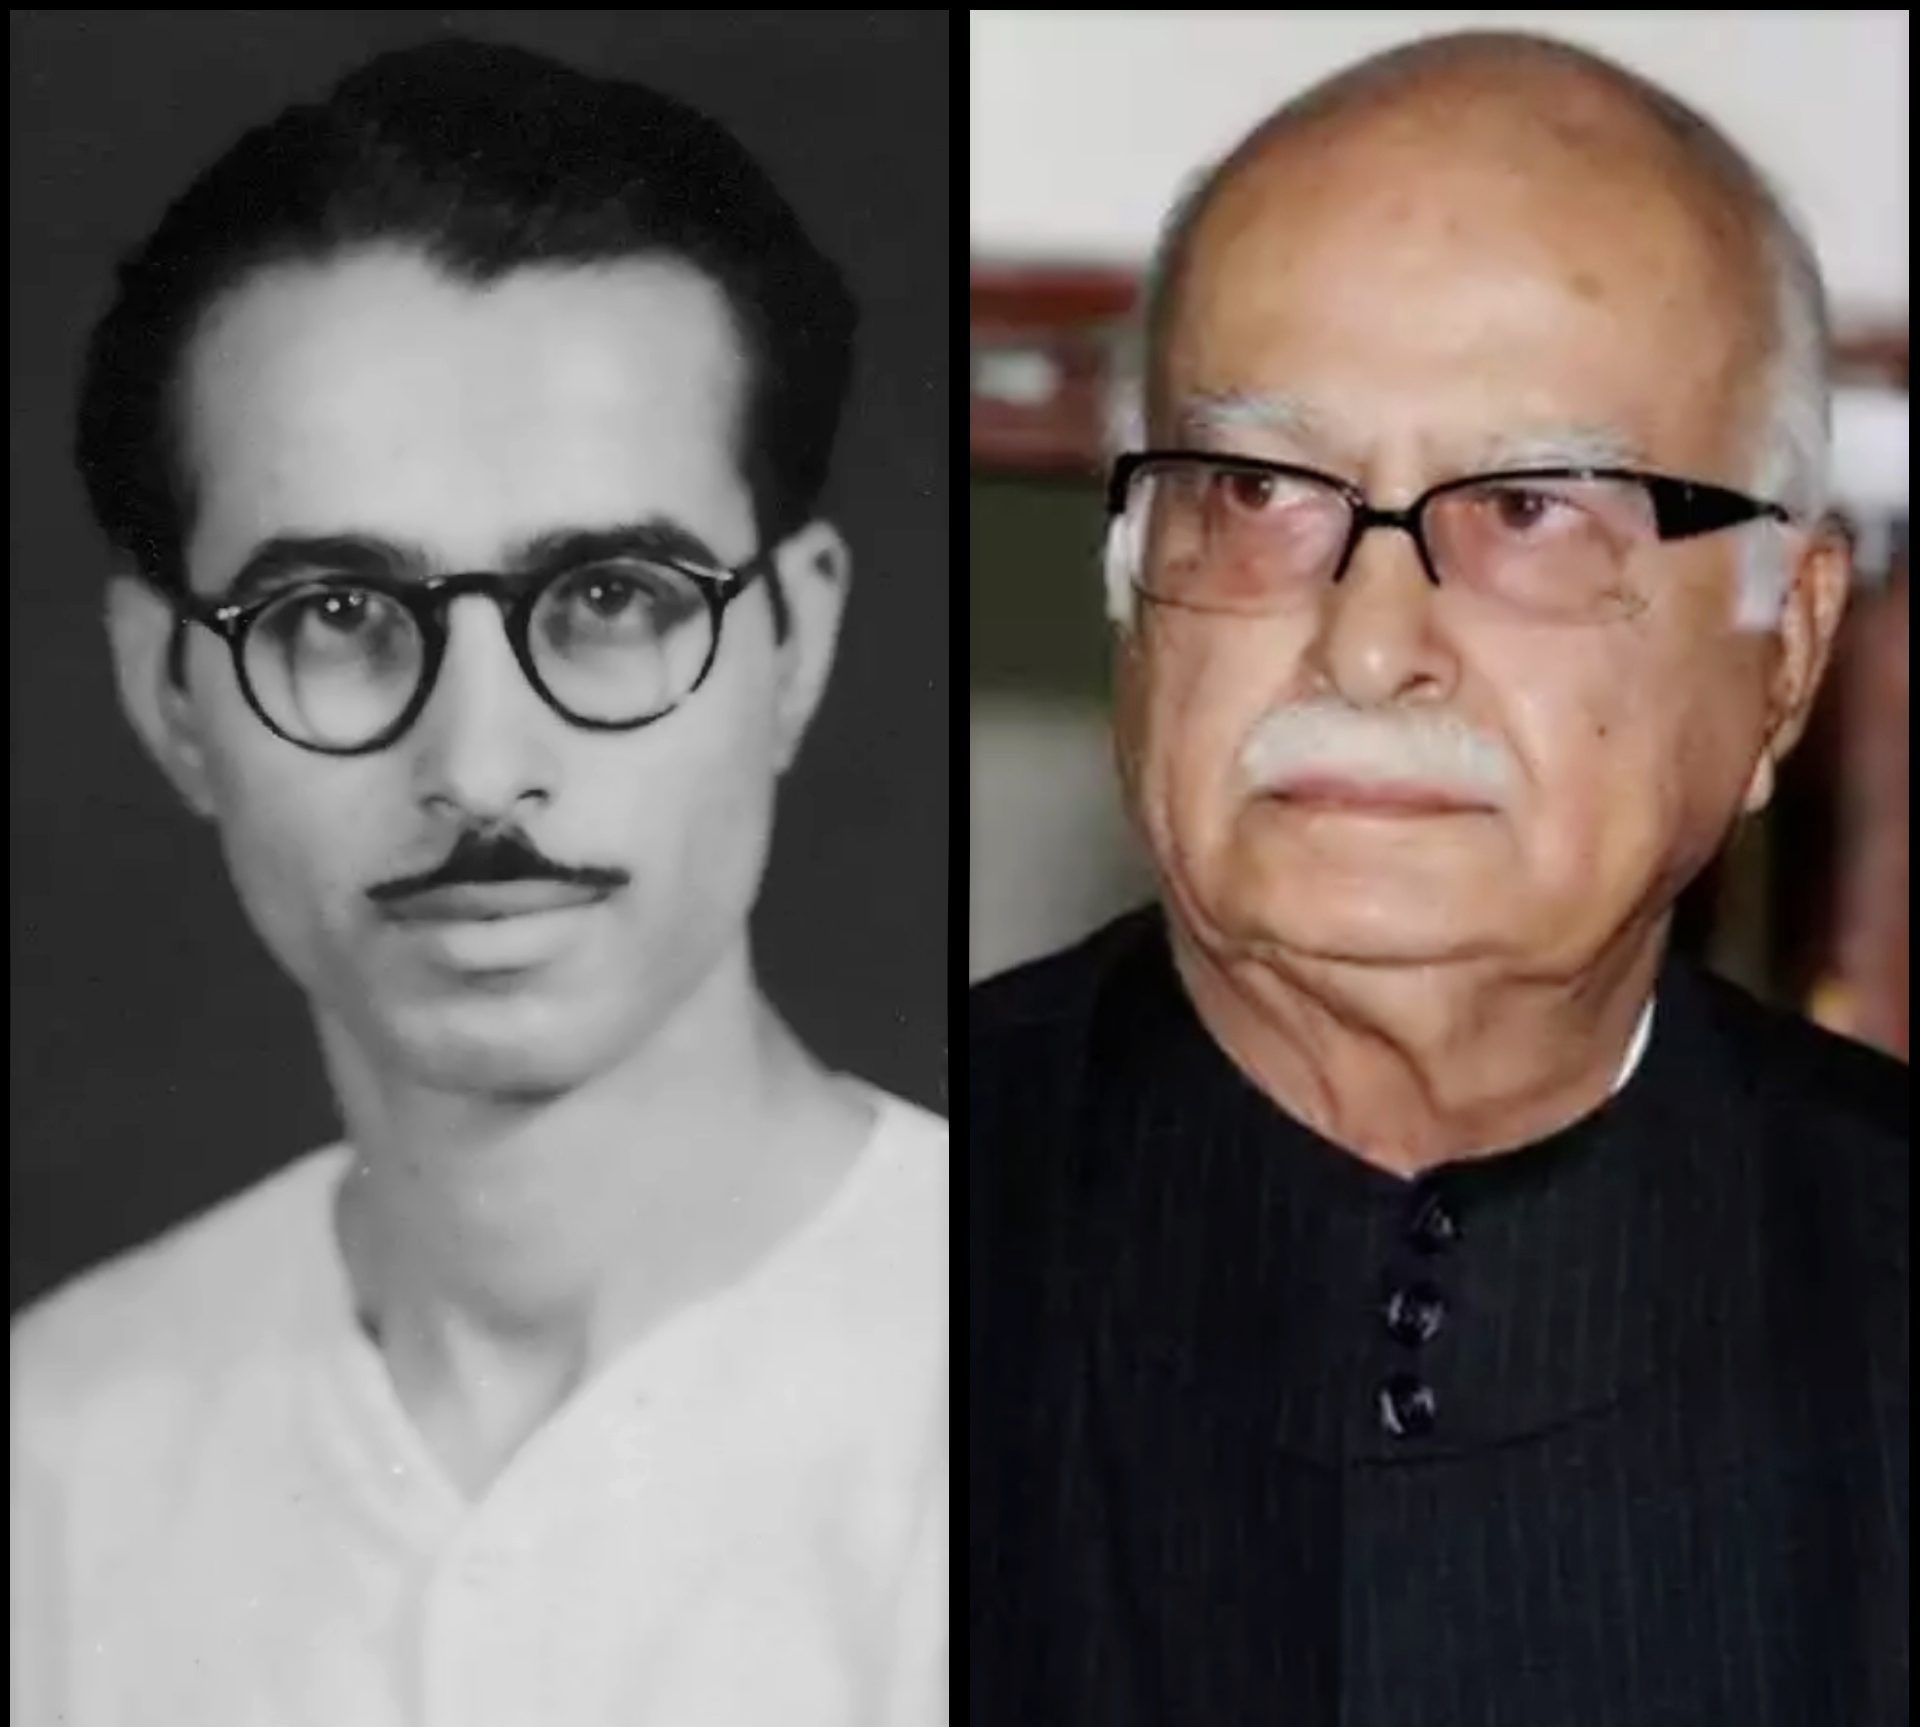 lal krishna advani, Indian Politicians, politics, unseen pictures, rare pictures,vintage pictures of Indian Politicians